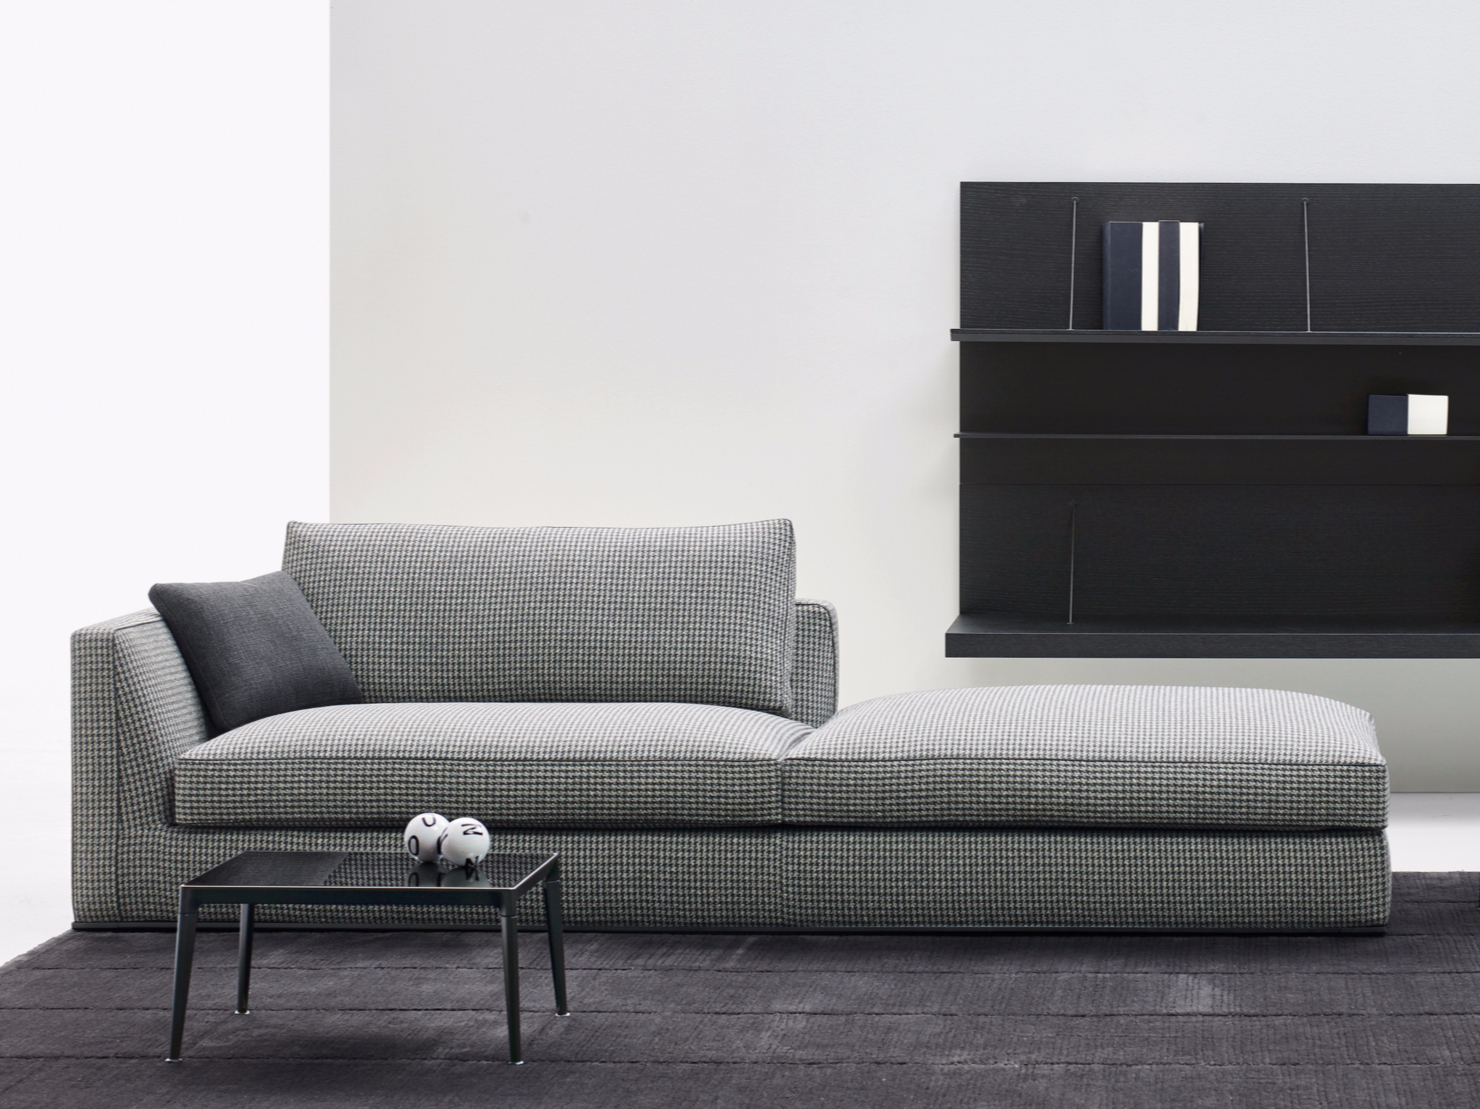 B Und B Italia Sessel Sofa Aus Stoff Kollektion Richard By B Andb Italia Design